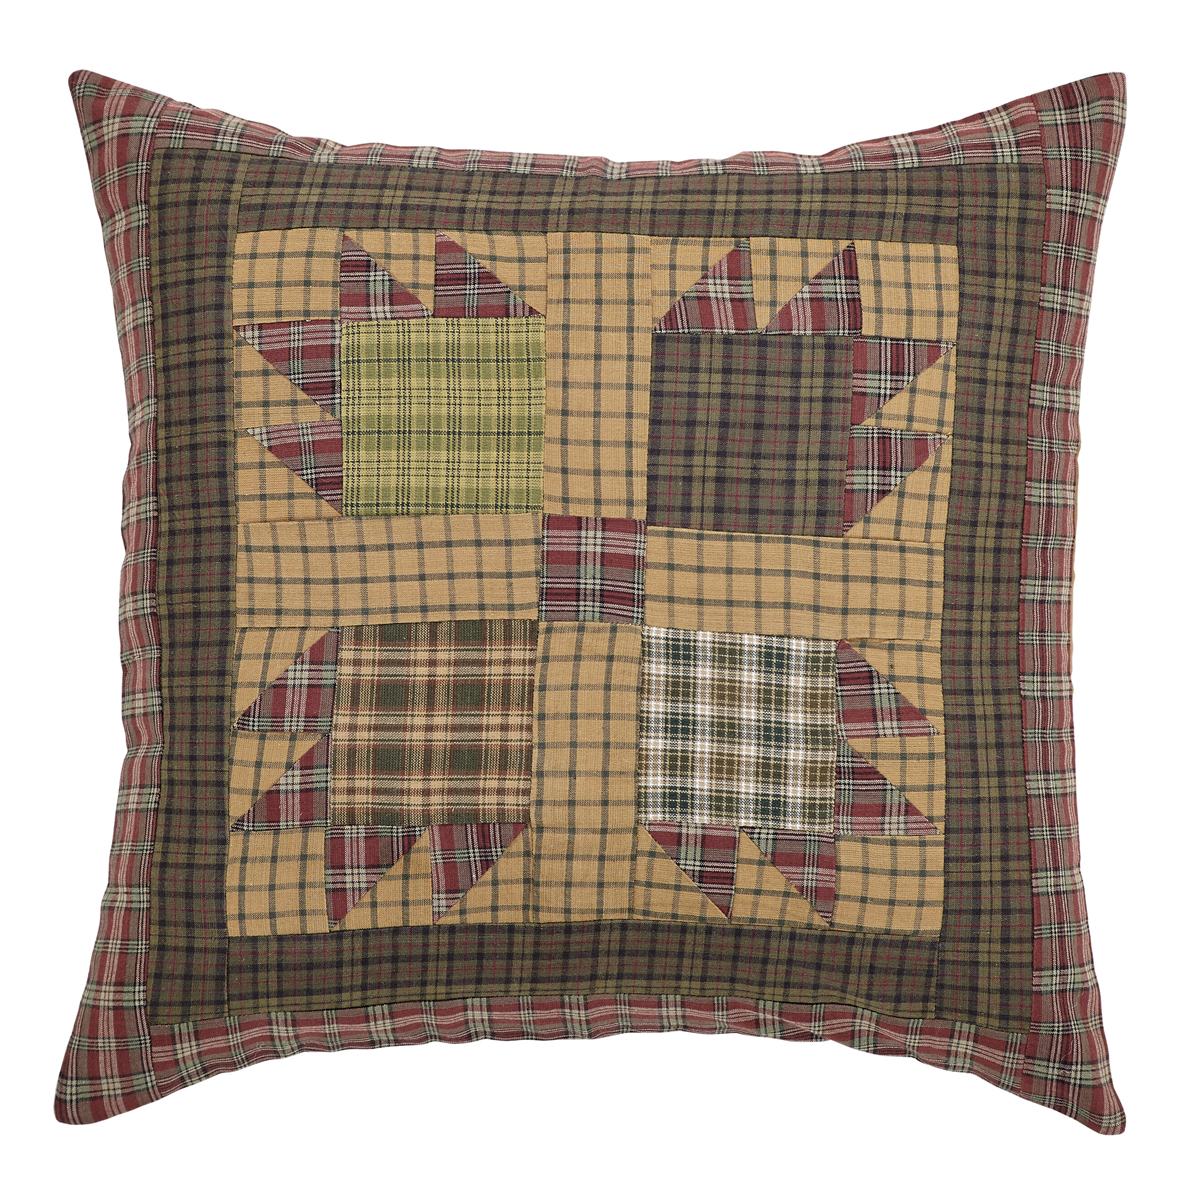 Canavar Ridge Patchwork Pillow Cover 16x16